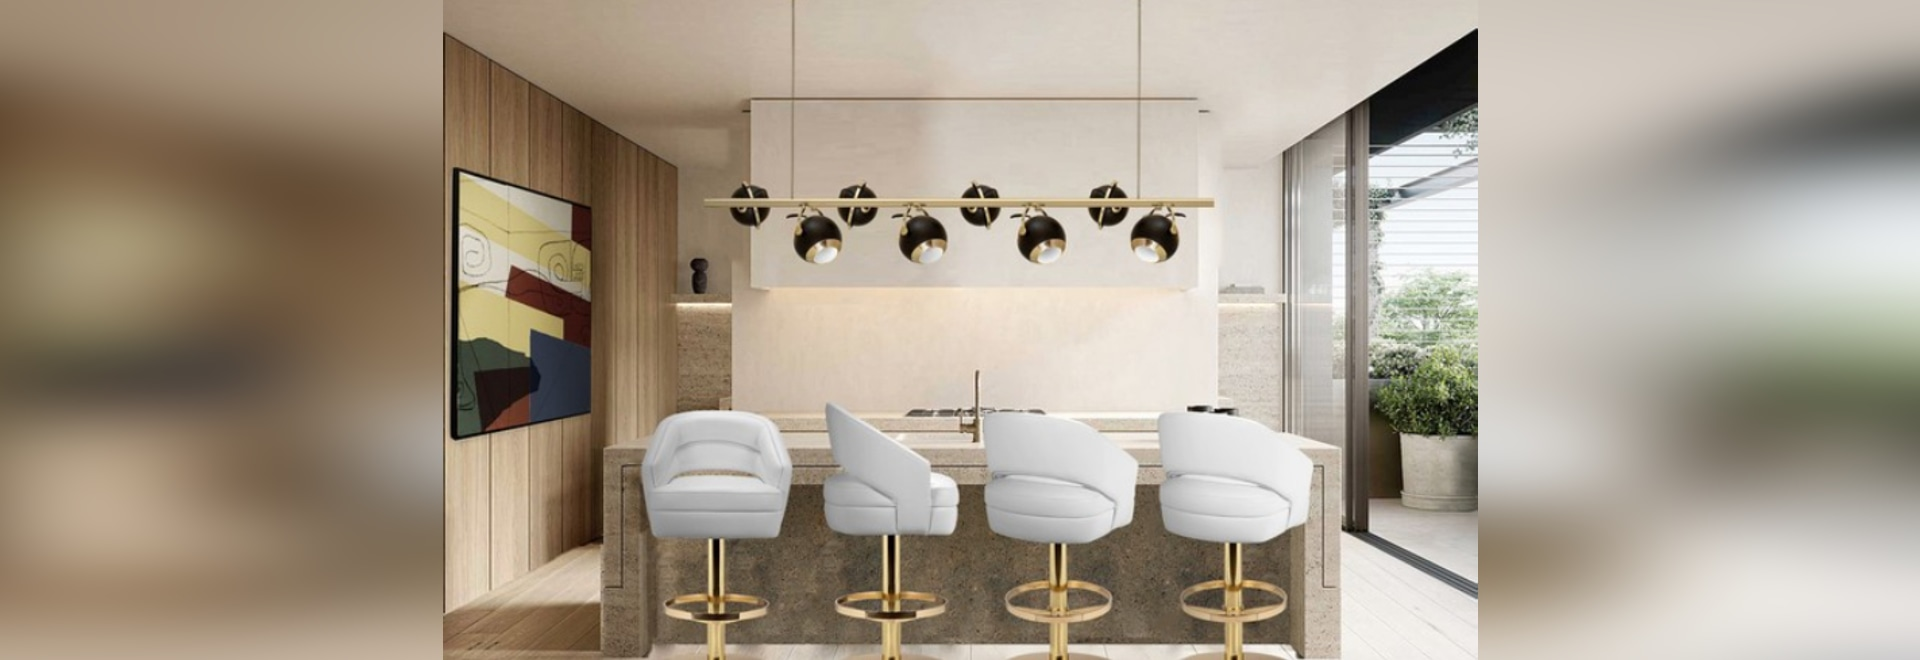 Watch Out For The New Mid Century Lighting Design Of The Scofield Family United States Delightfull